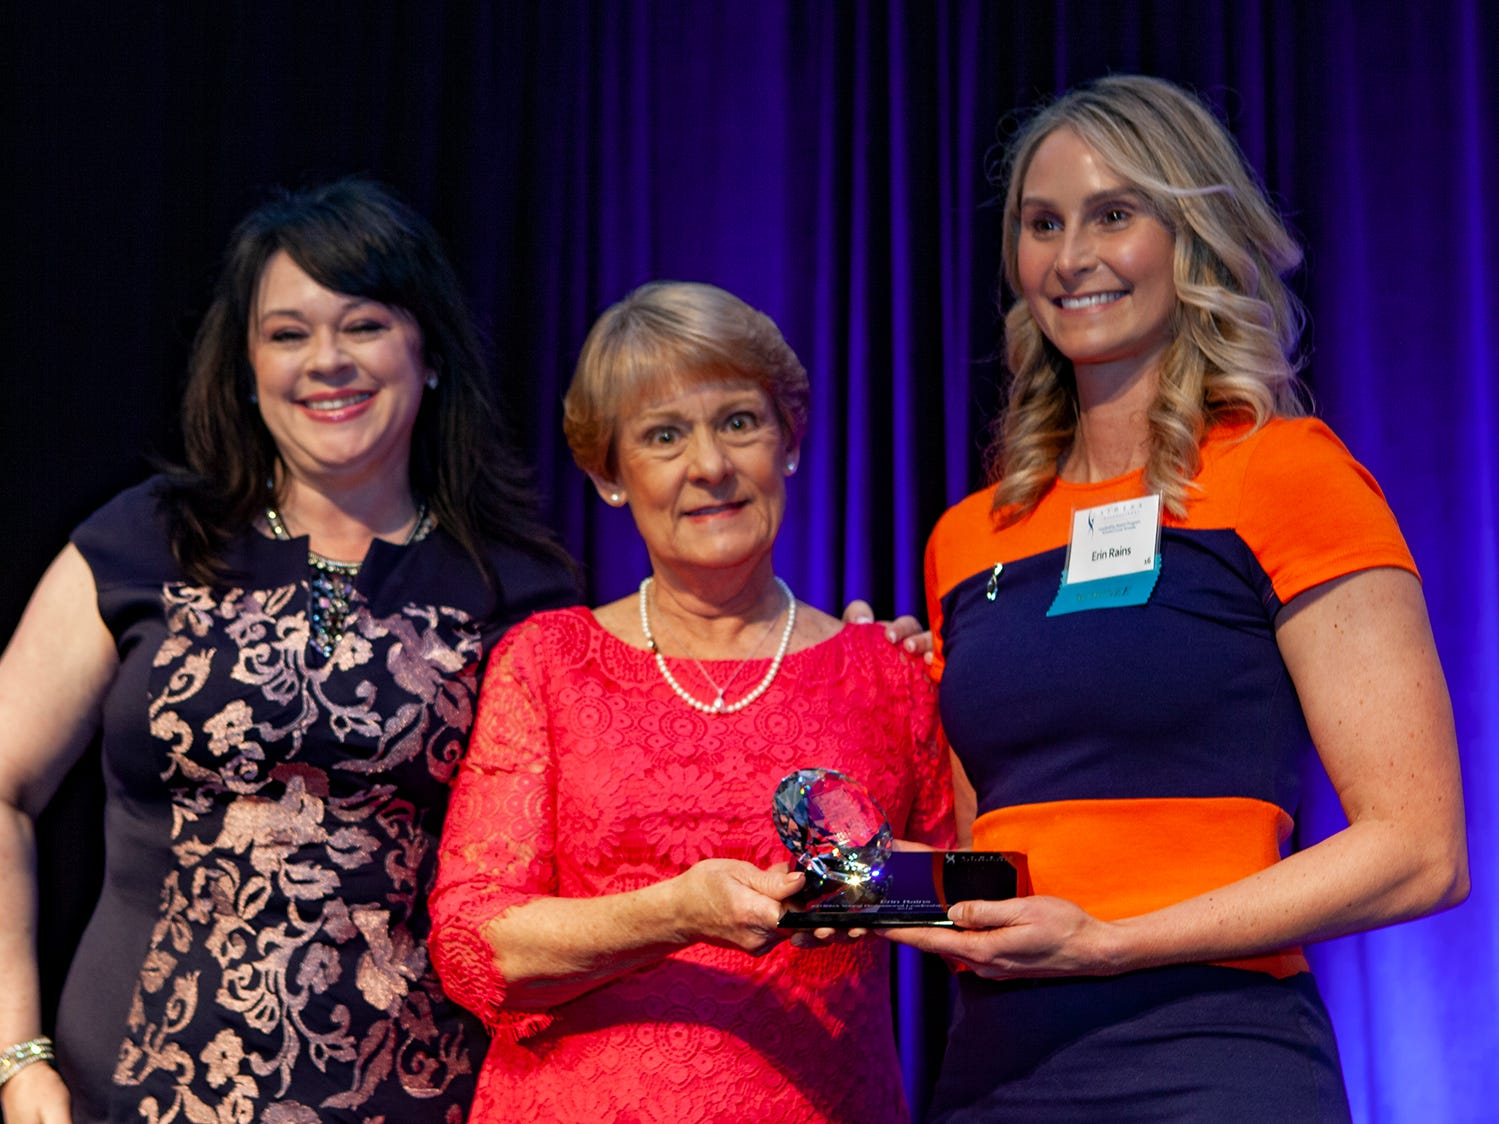 The annual ATHENA Leadership Awards, hosted by Rutherford Cable, were held Friday, April 12, 2019 at Embassy Suites Murfreesboro.